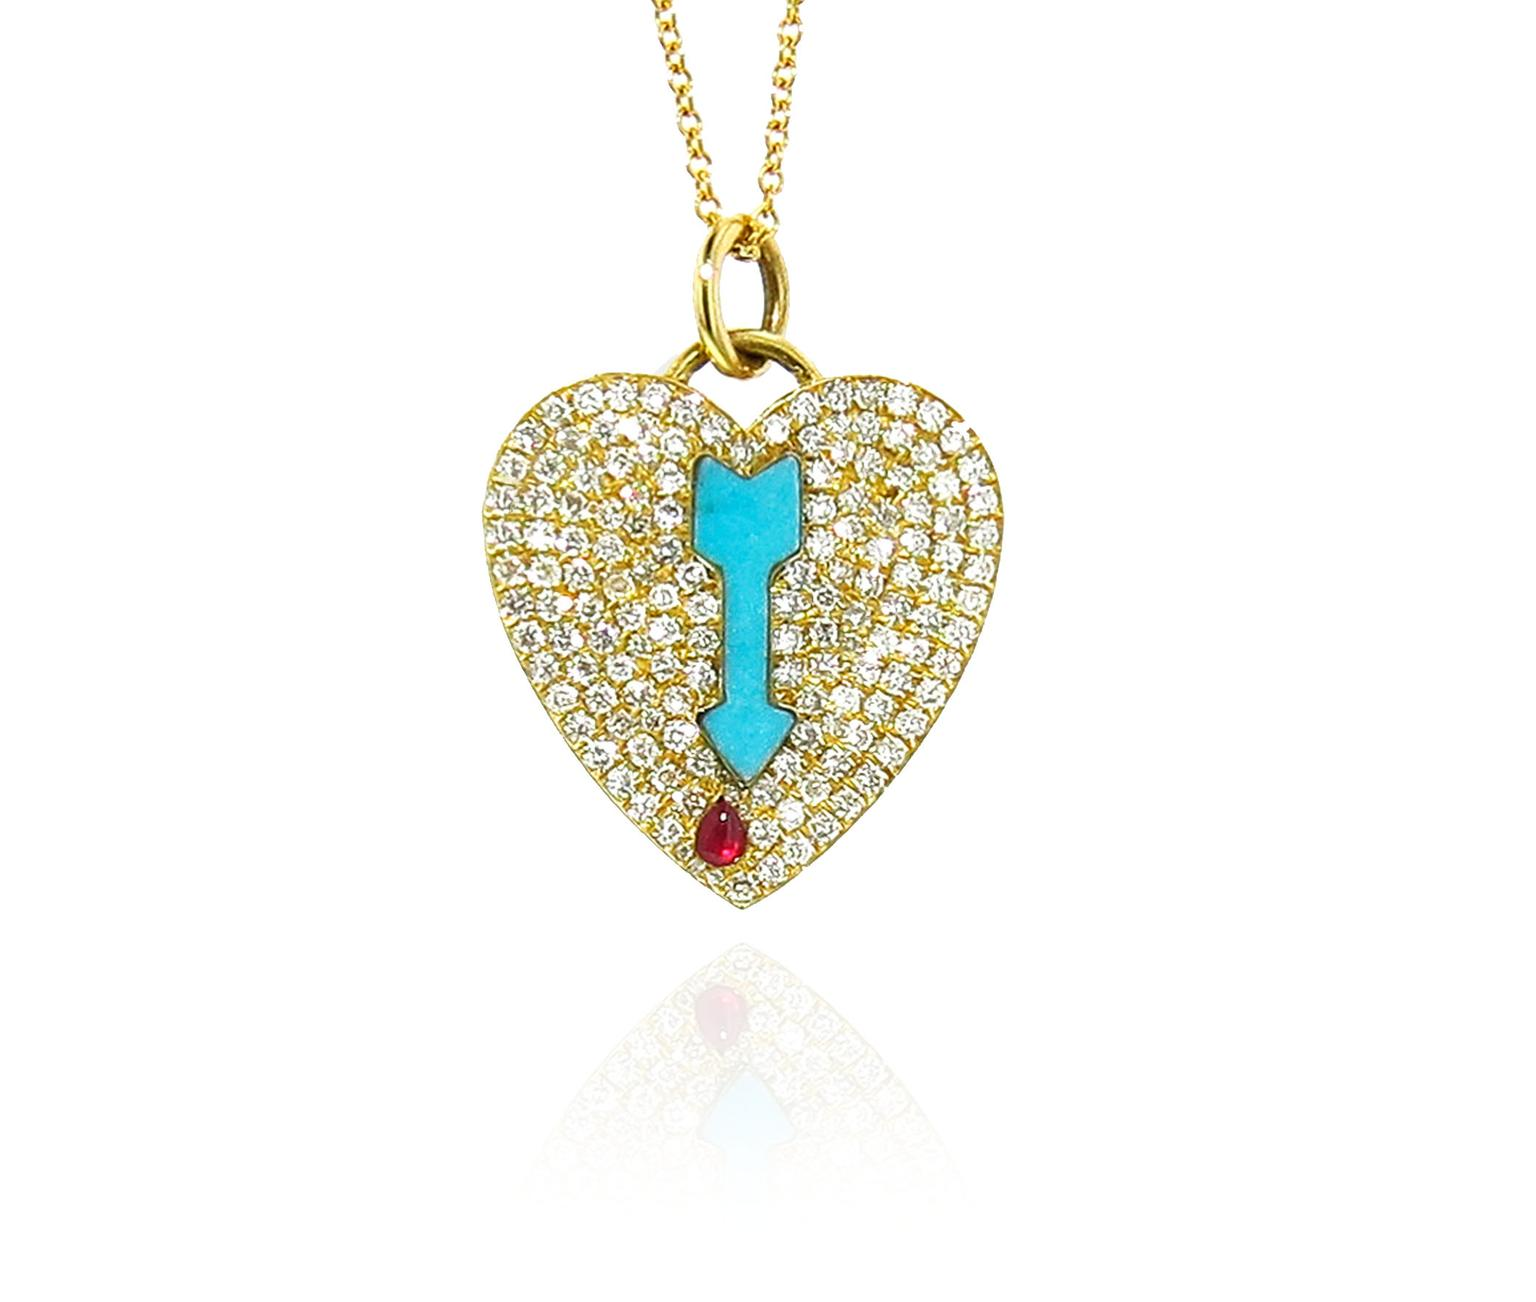 JMeyers-Heart-Necklace-Zoom